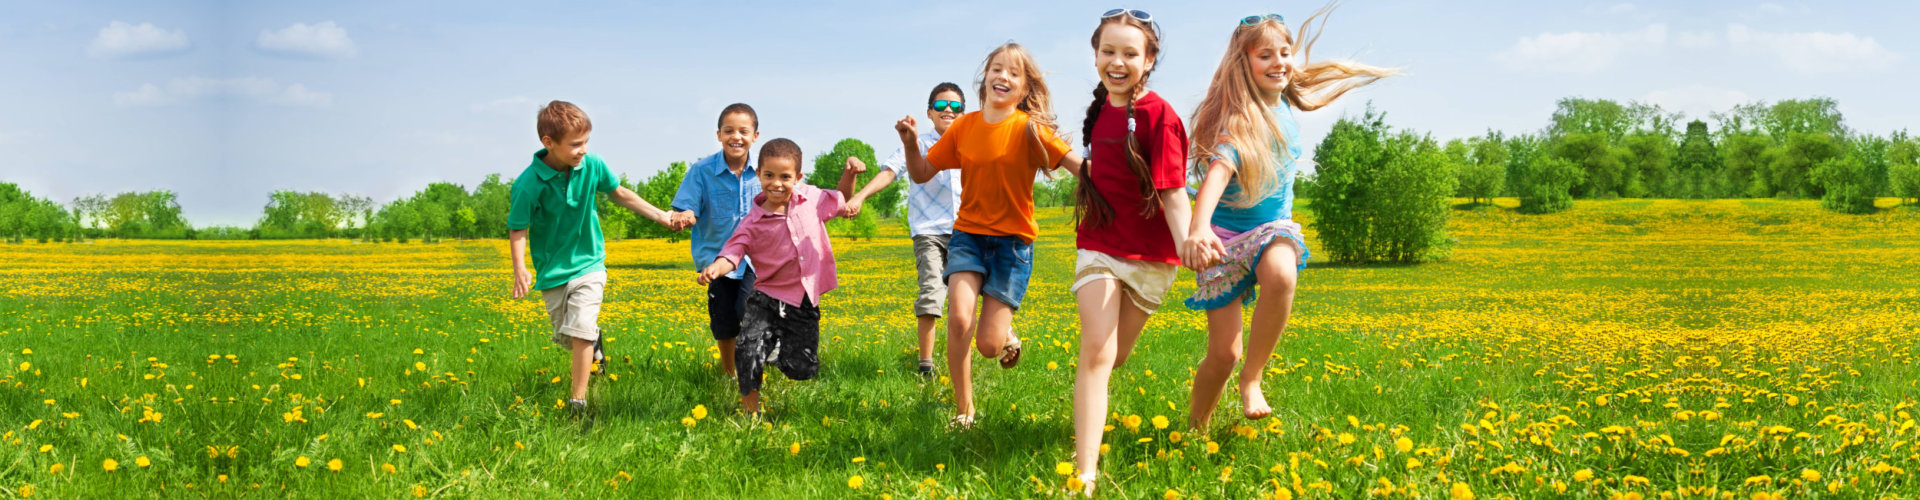 Large group of kids running in the dandelion spring field